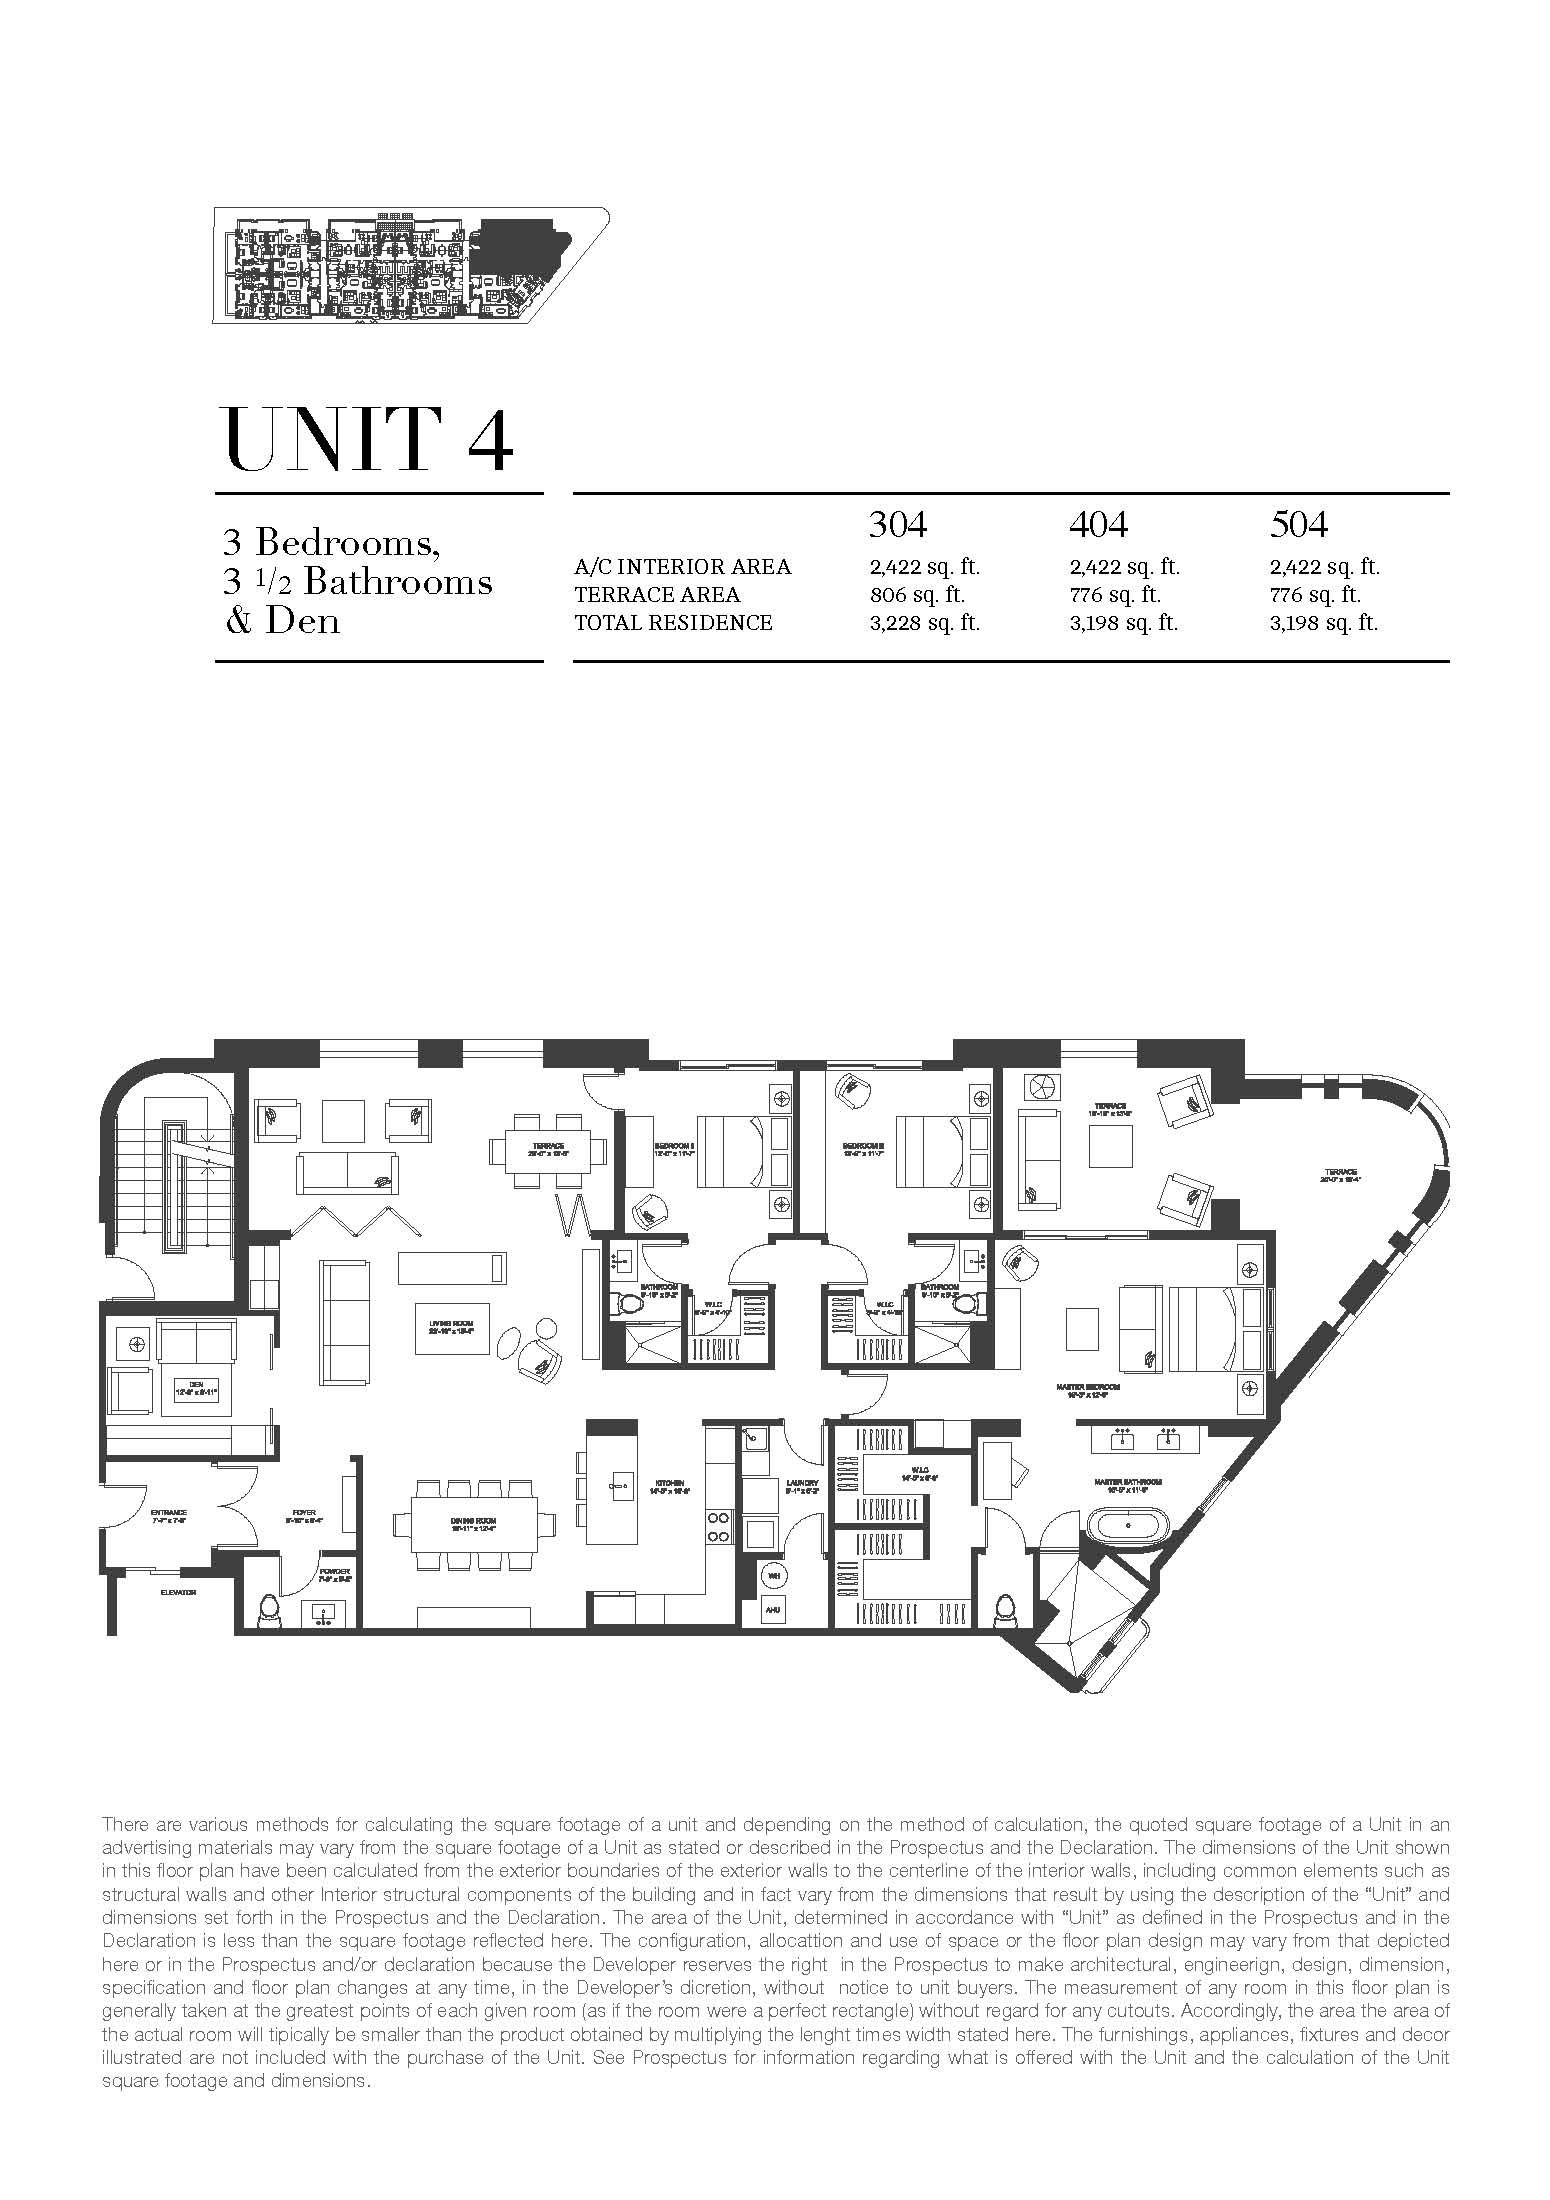 Biltmore parc coral gables condos for sale and rent for Biltmore estate floor plan